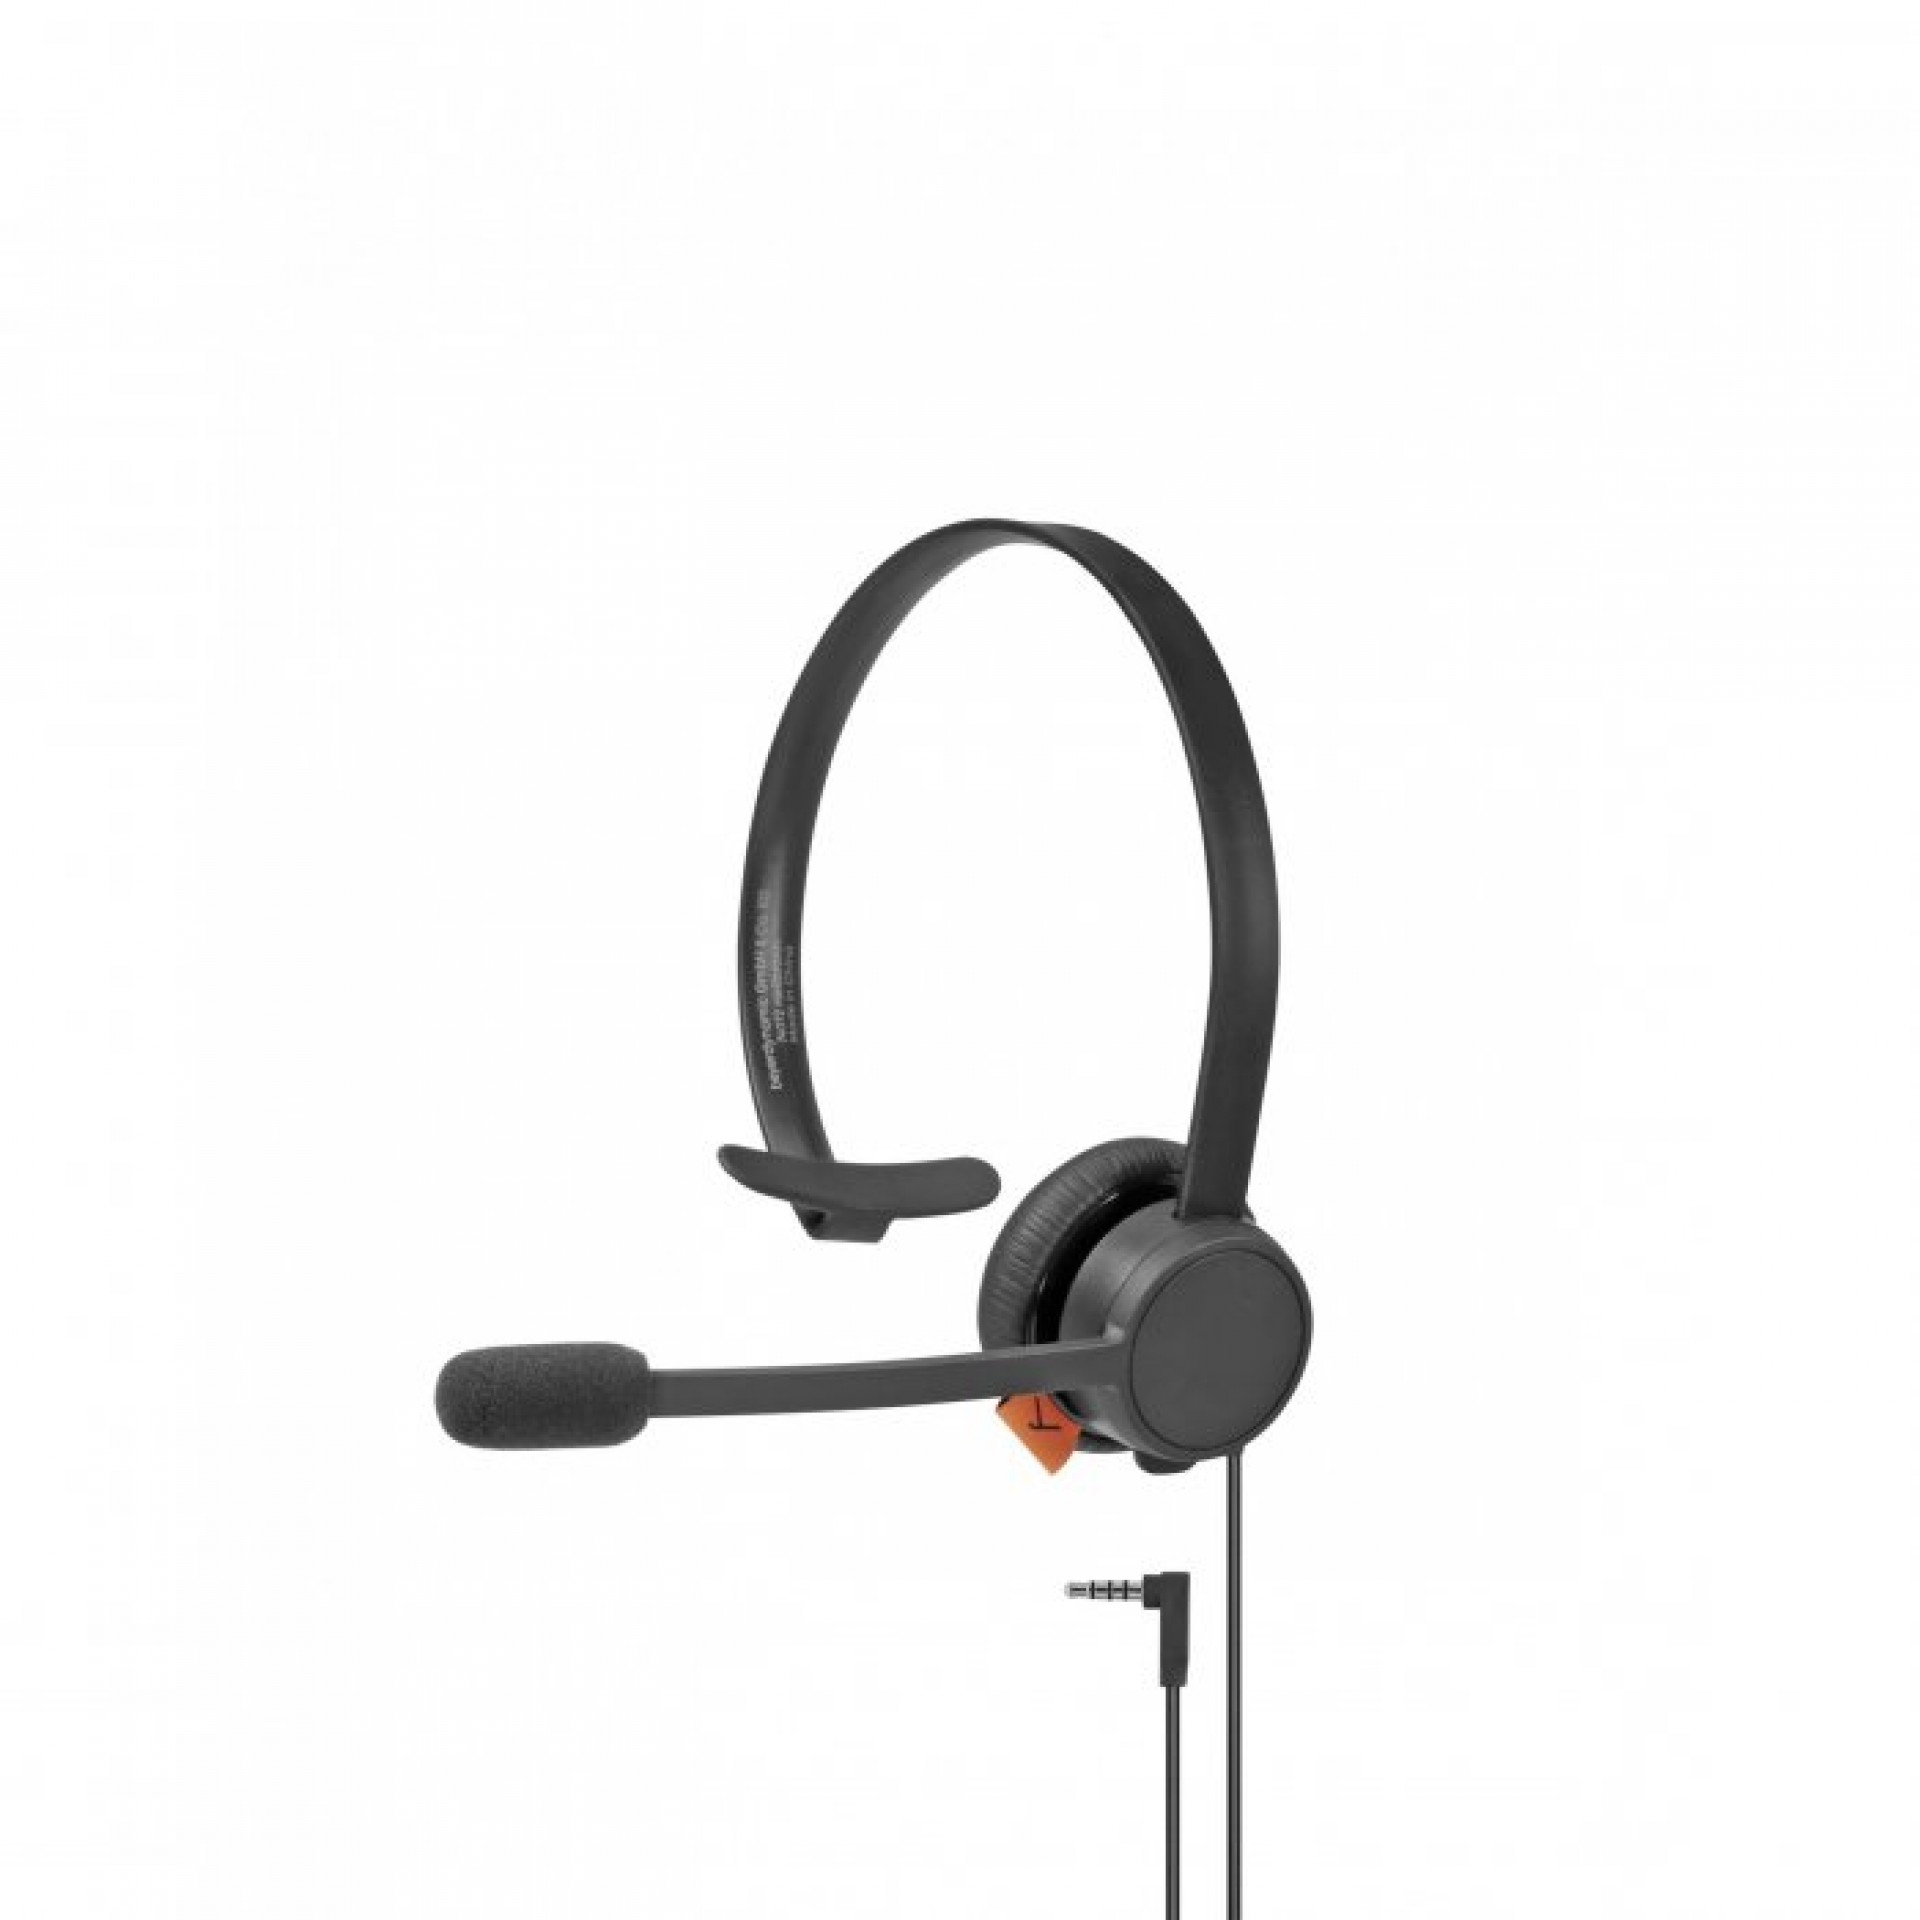 BEYERDYNAMIC HSP 321